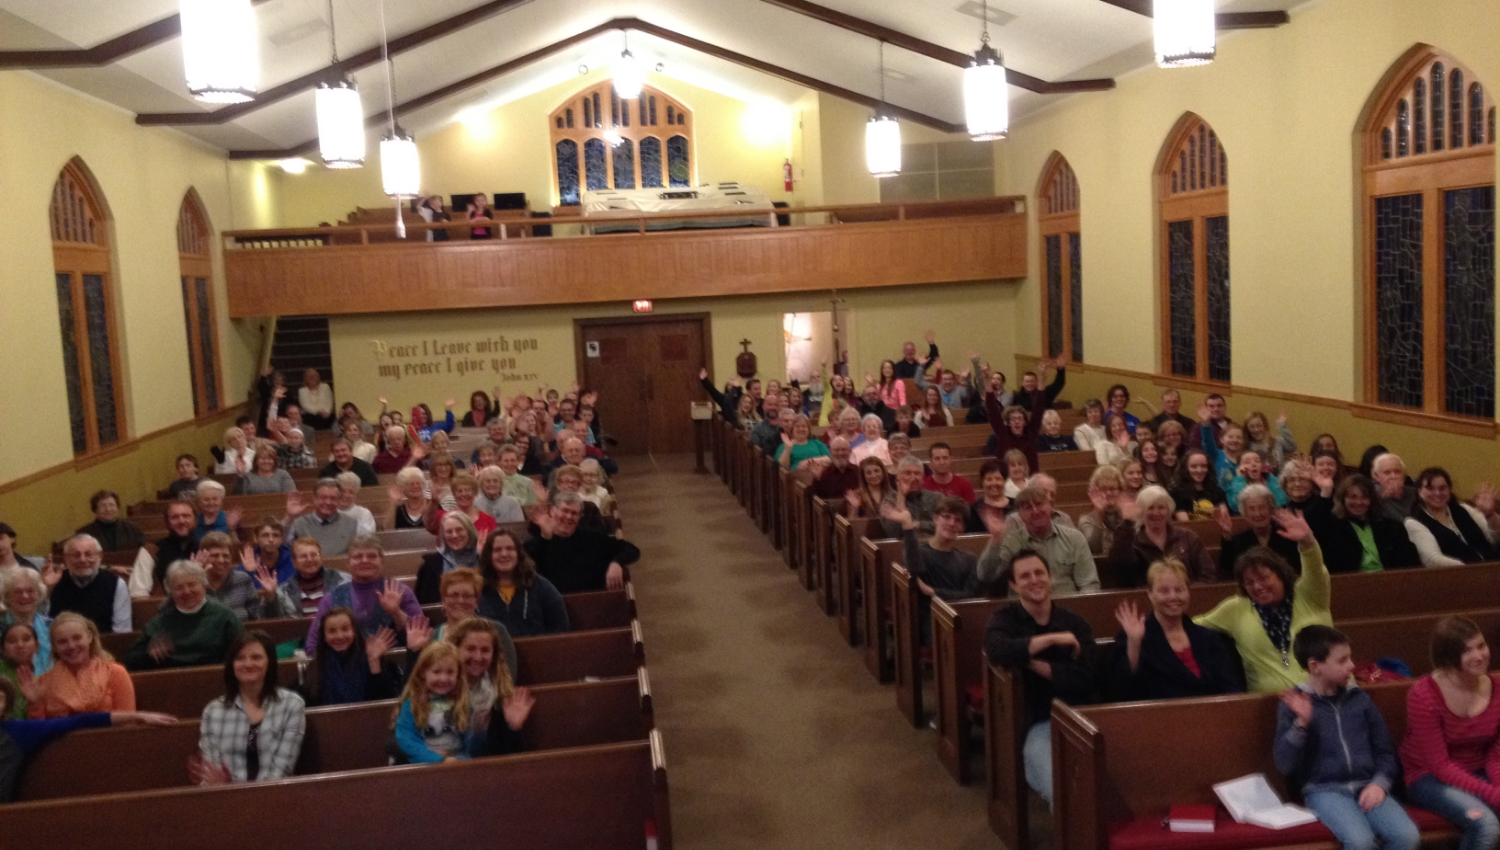 Check out this awesome crowd in Southern Illinois!